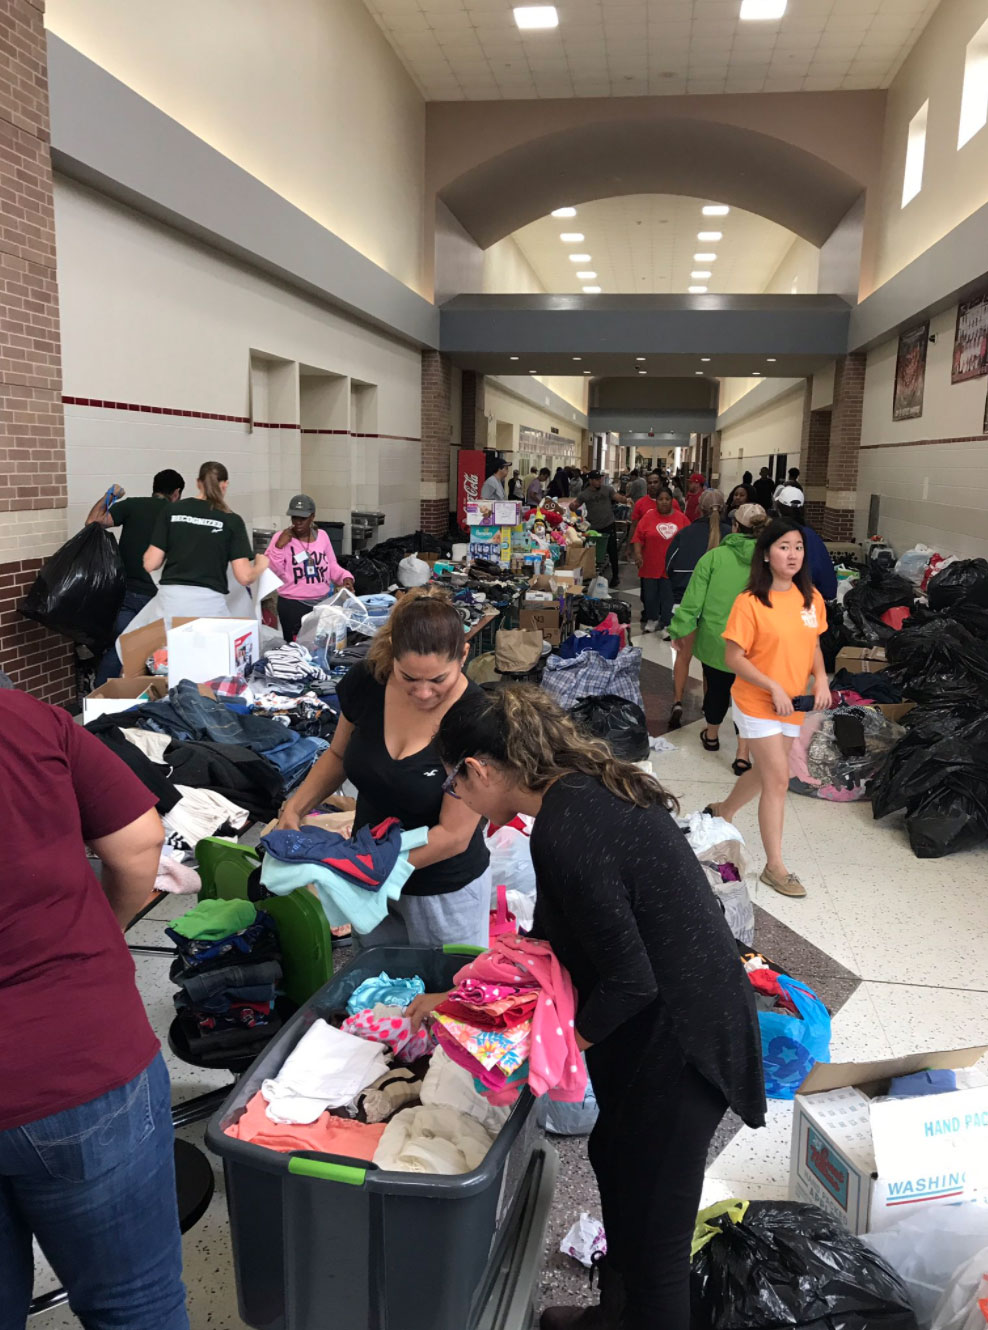 "<div class=""meta image-caption""><div class=""origin-logo origin-image none""><span>none</span></div><span class=""caption-text"">People take shelter at Alief Taylor High School. (AliefISD/Twitter)</span></div>"